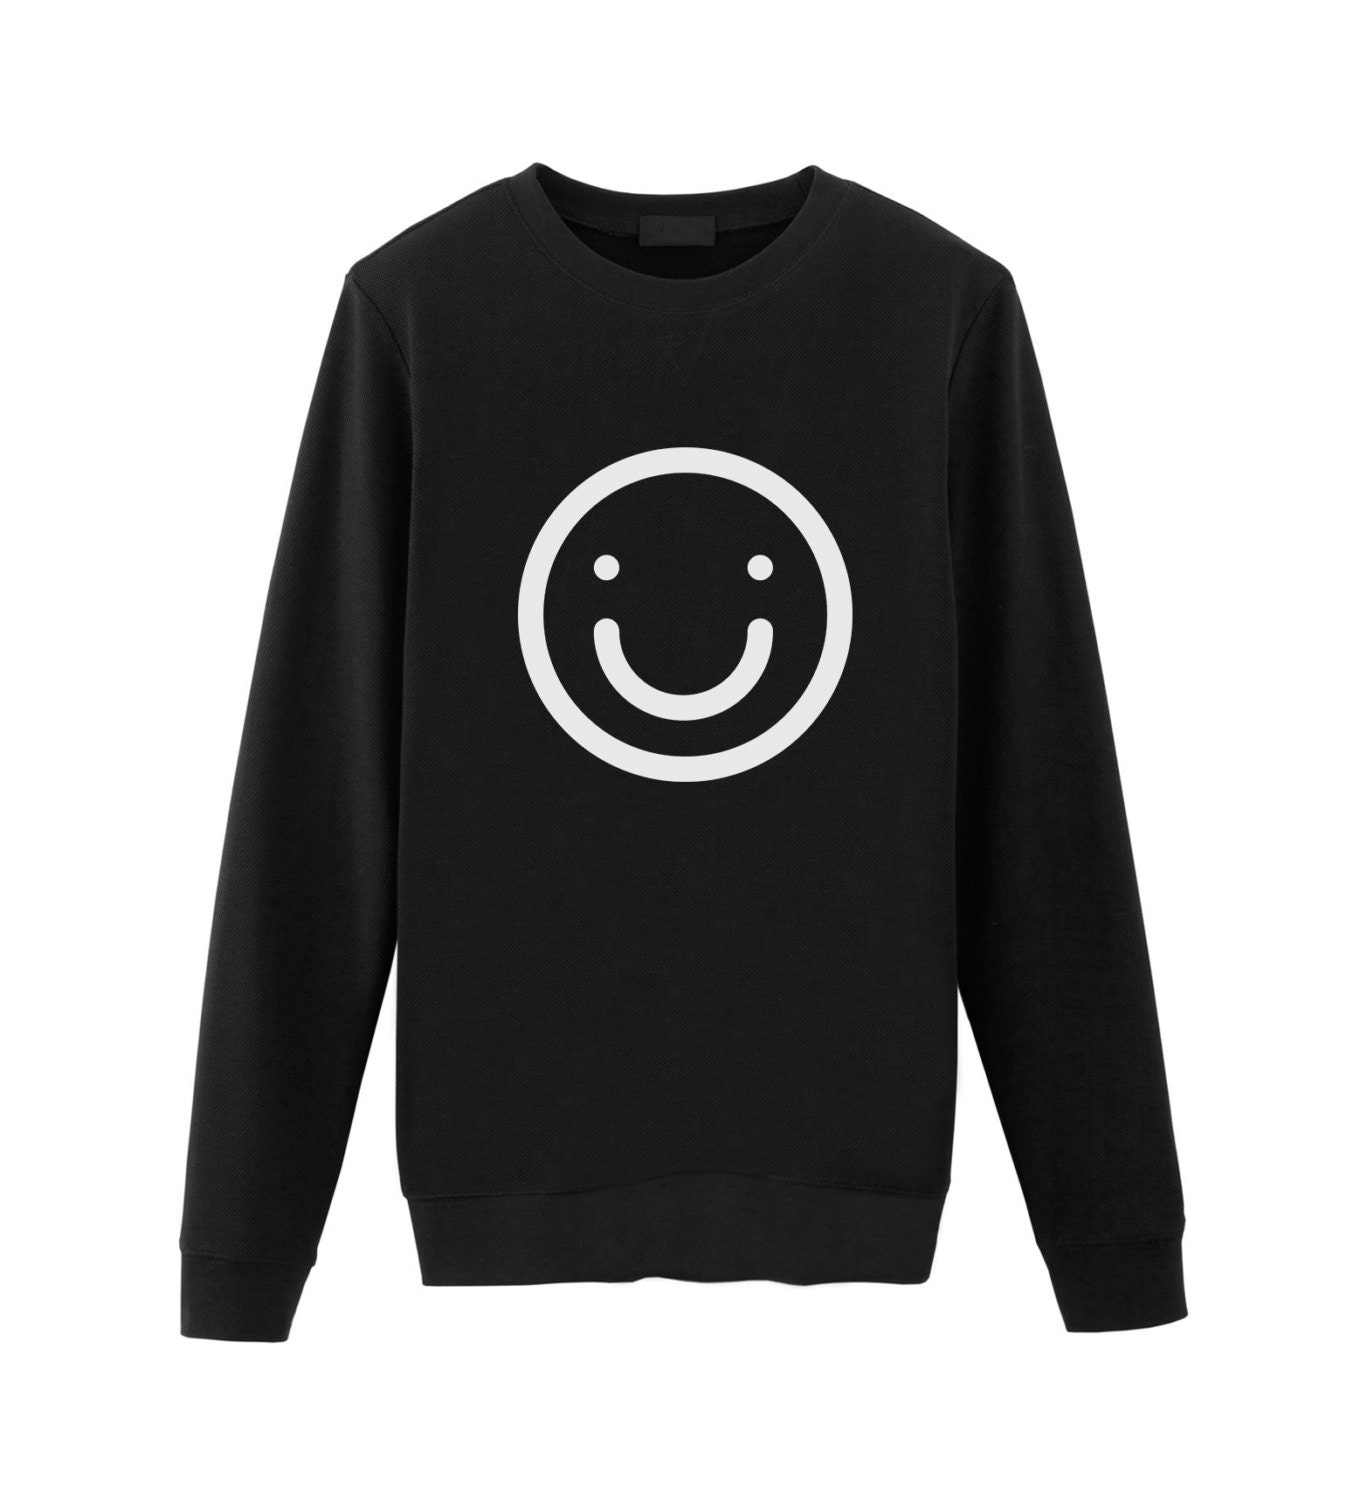 Smiley Happy Face Emoticon Sweatshirt Sweater Tumblr Etsy